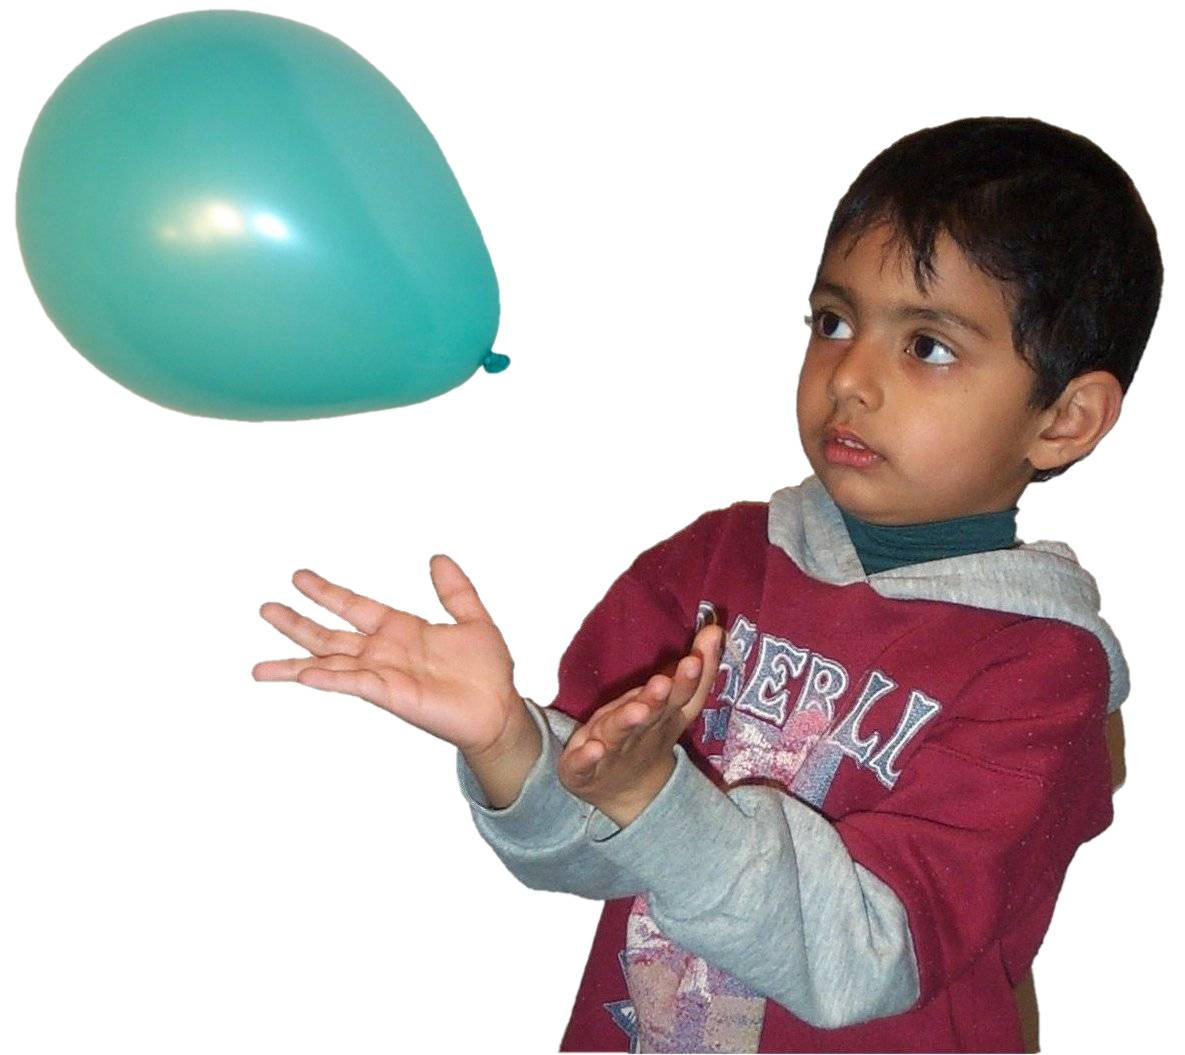 Boy catching balloon.jpg